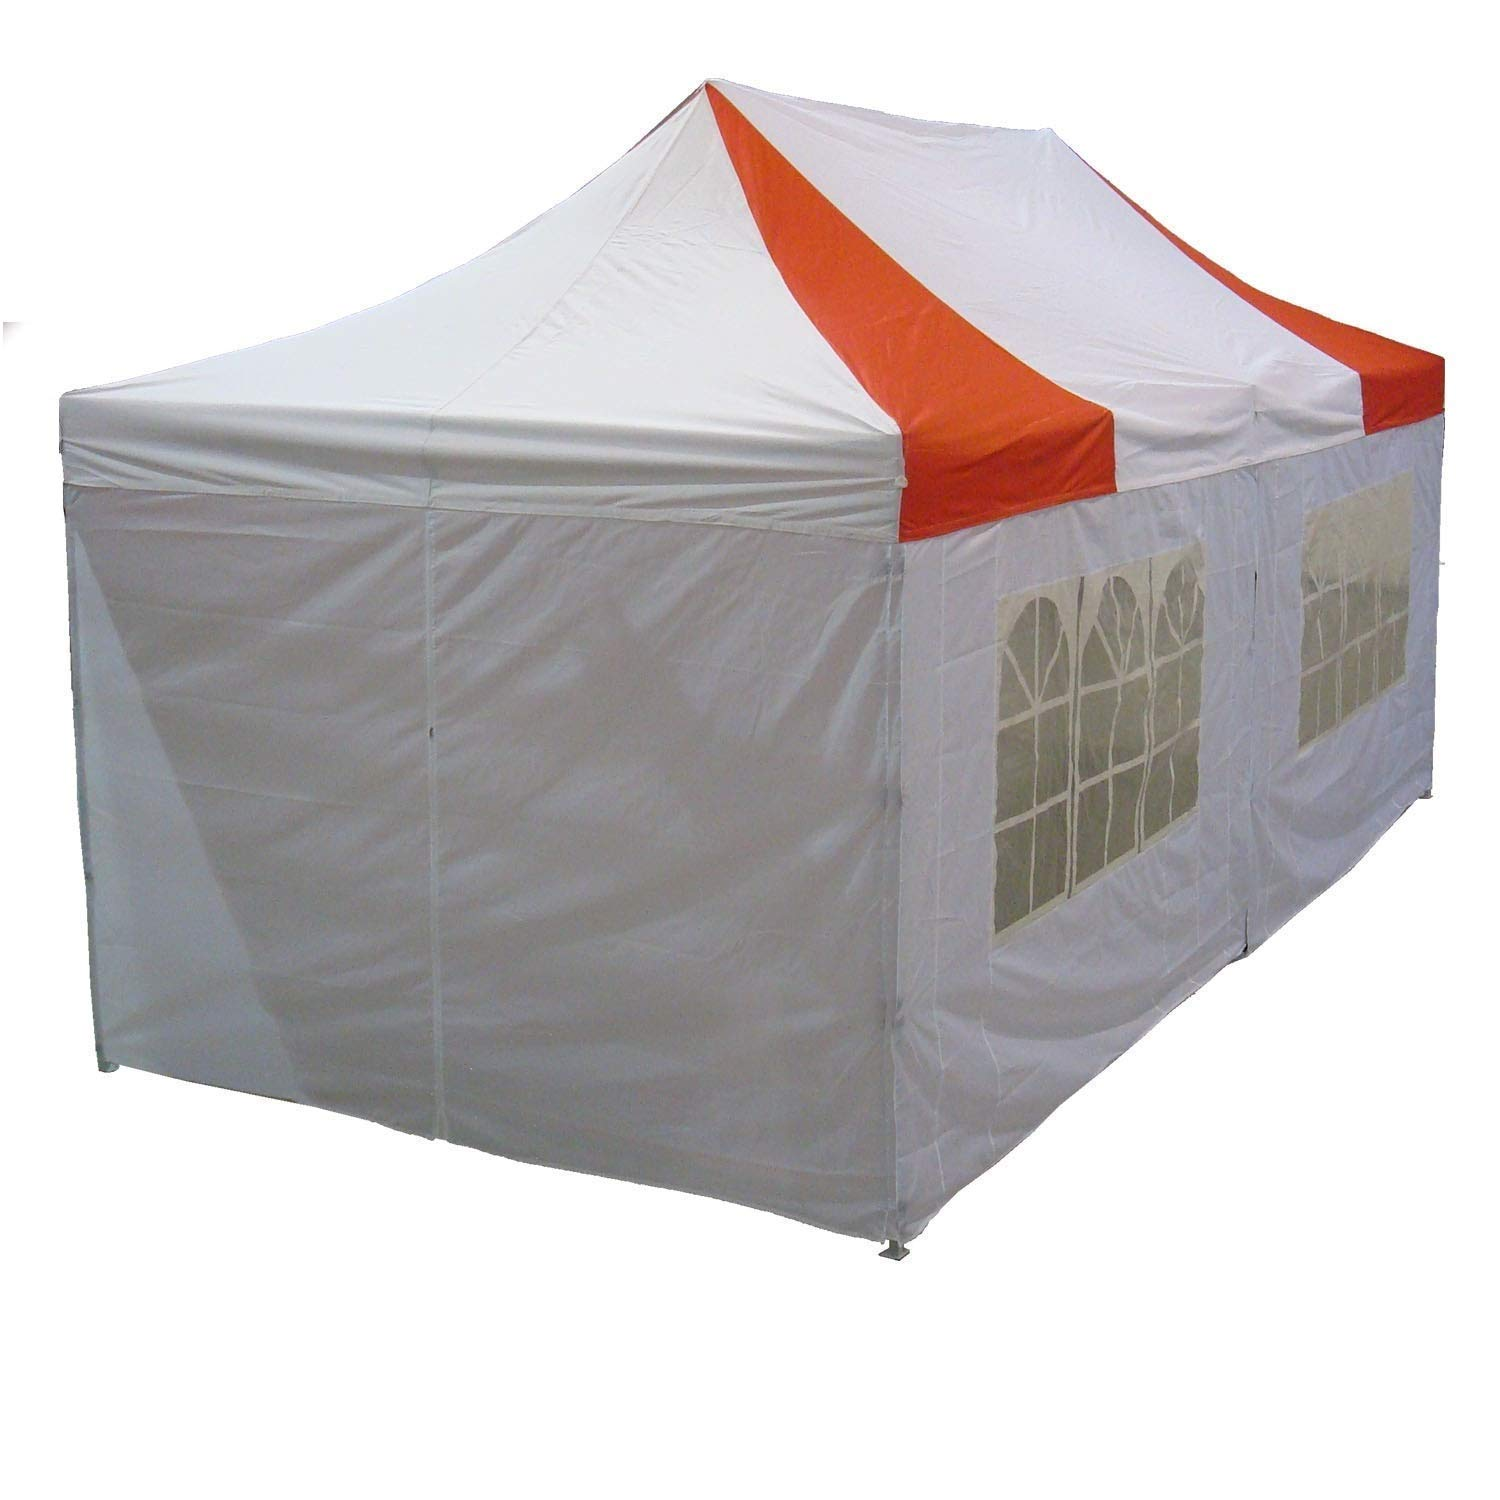 Delta 10 x20 Pop up 6 Walls Canopy Party Tent Gazebo Ez Red White – F Model Upgraded Frame Canopies